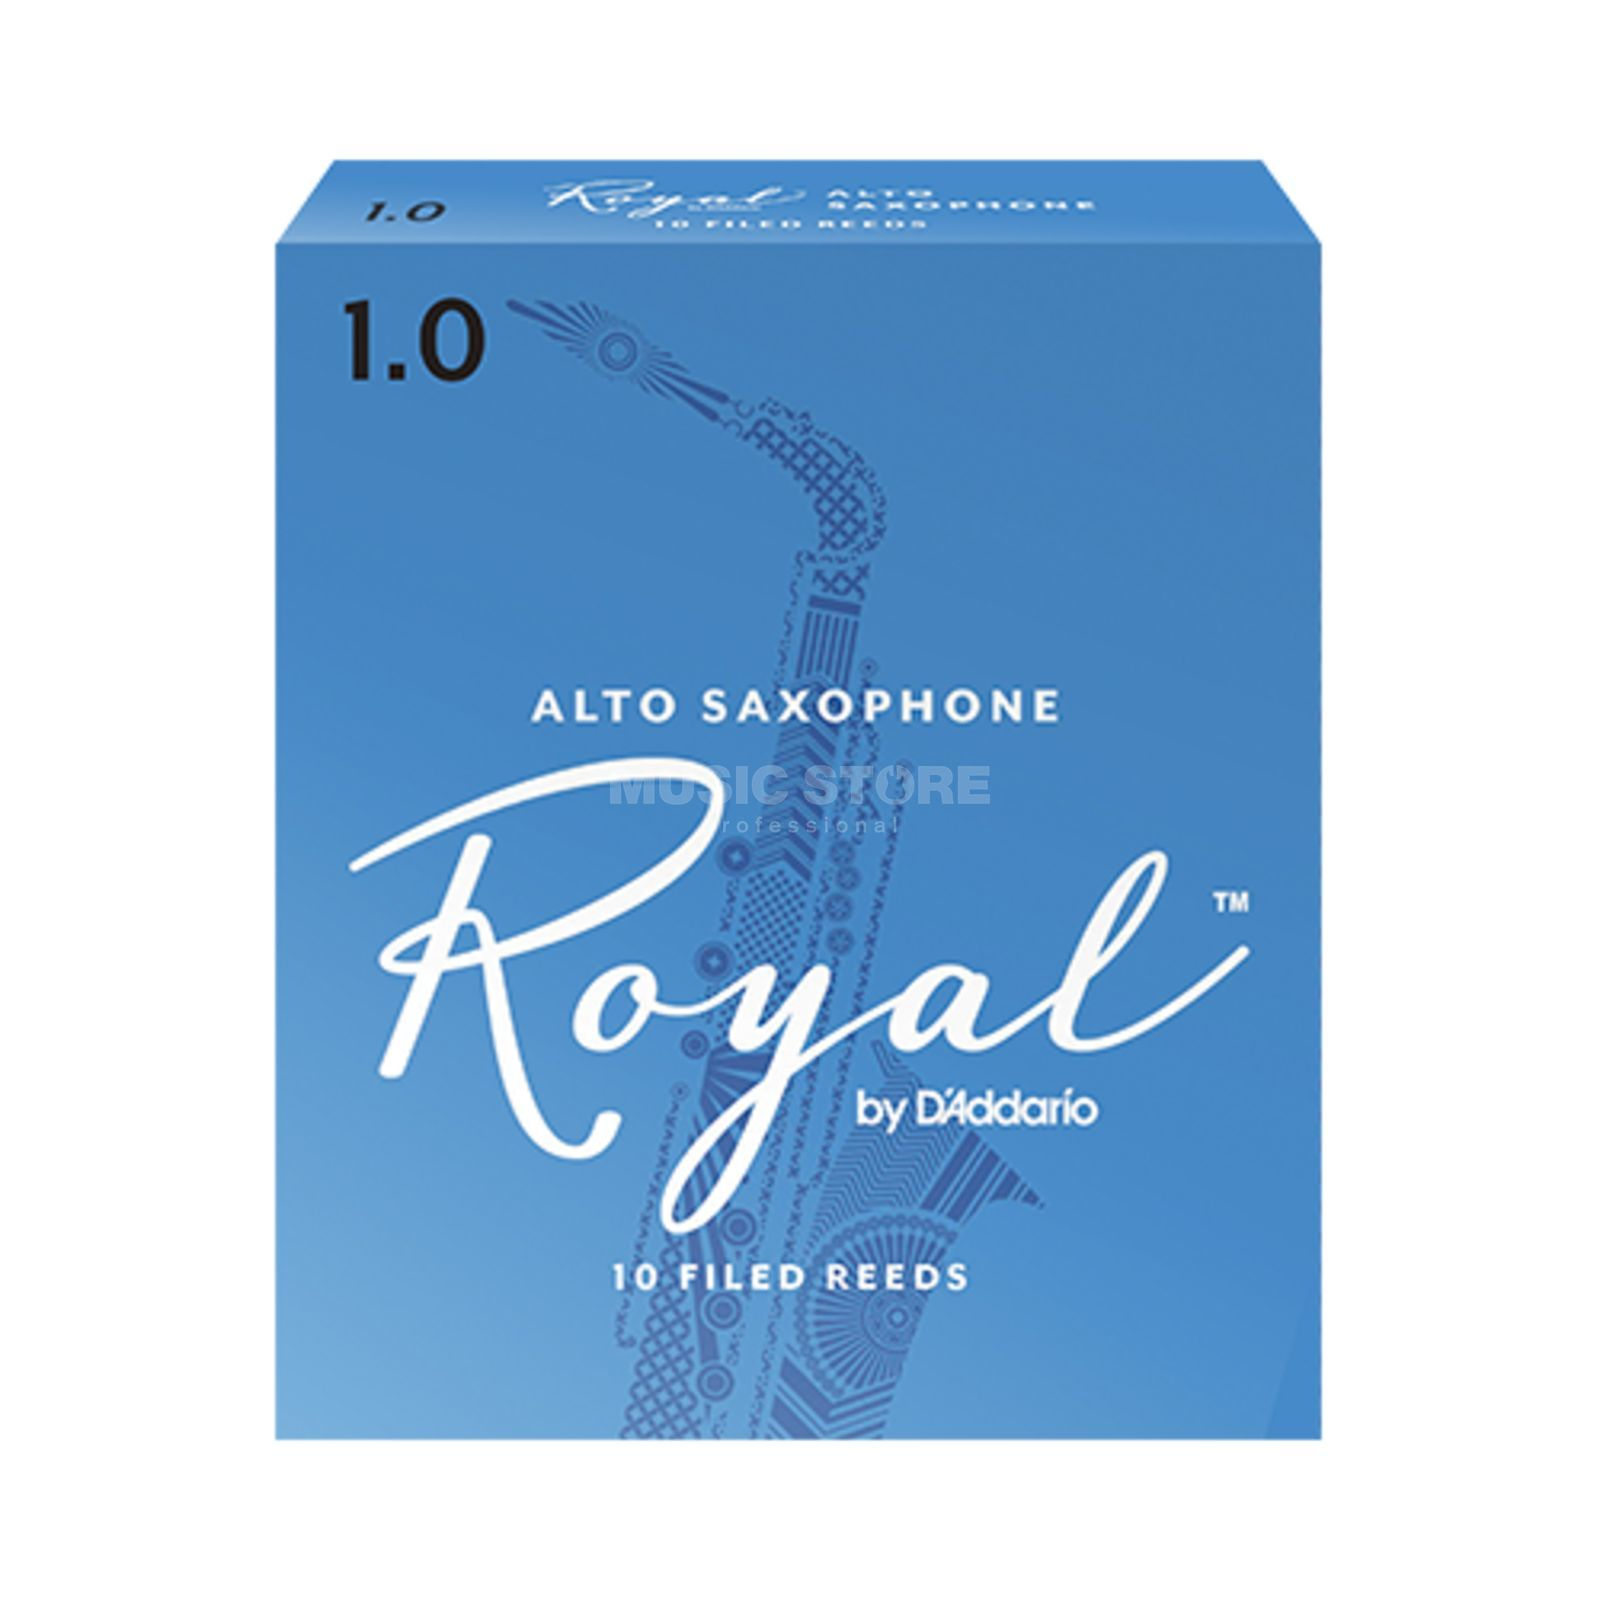 D'Addario Alto Saxophone Reeds 1 Box of 10 Product Image